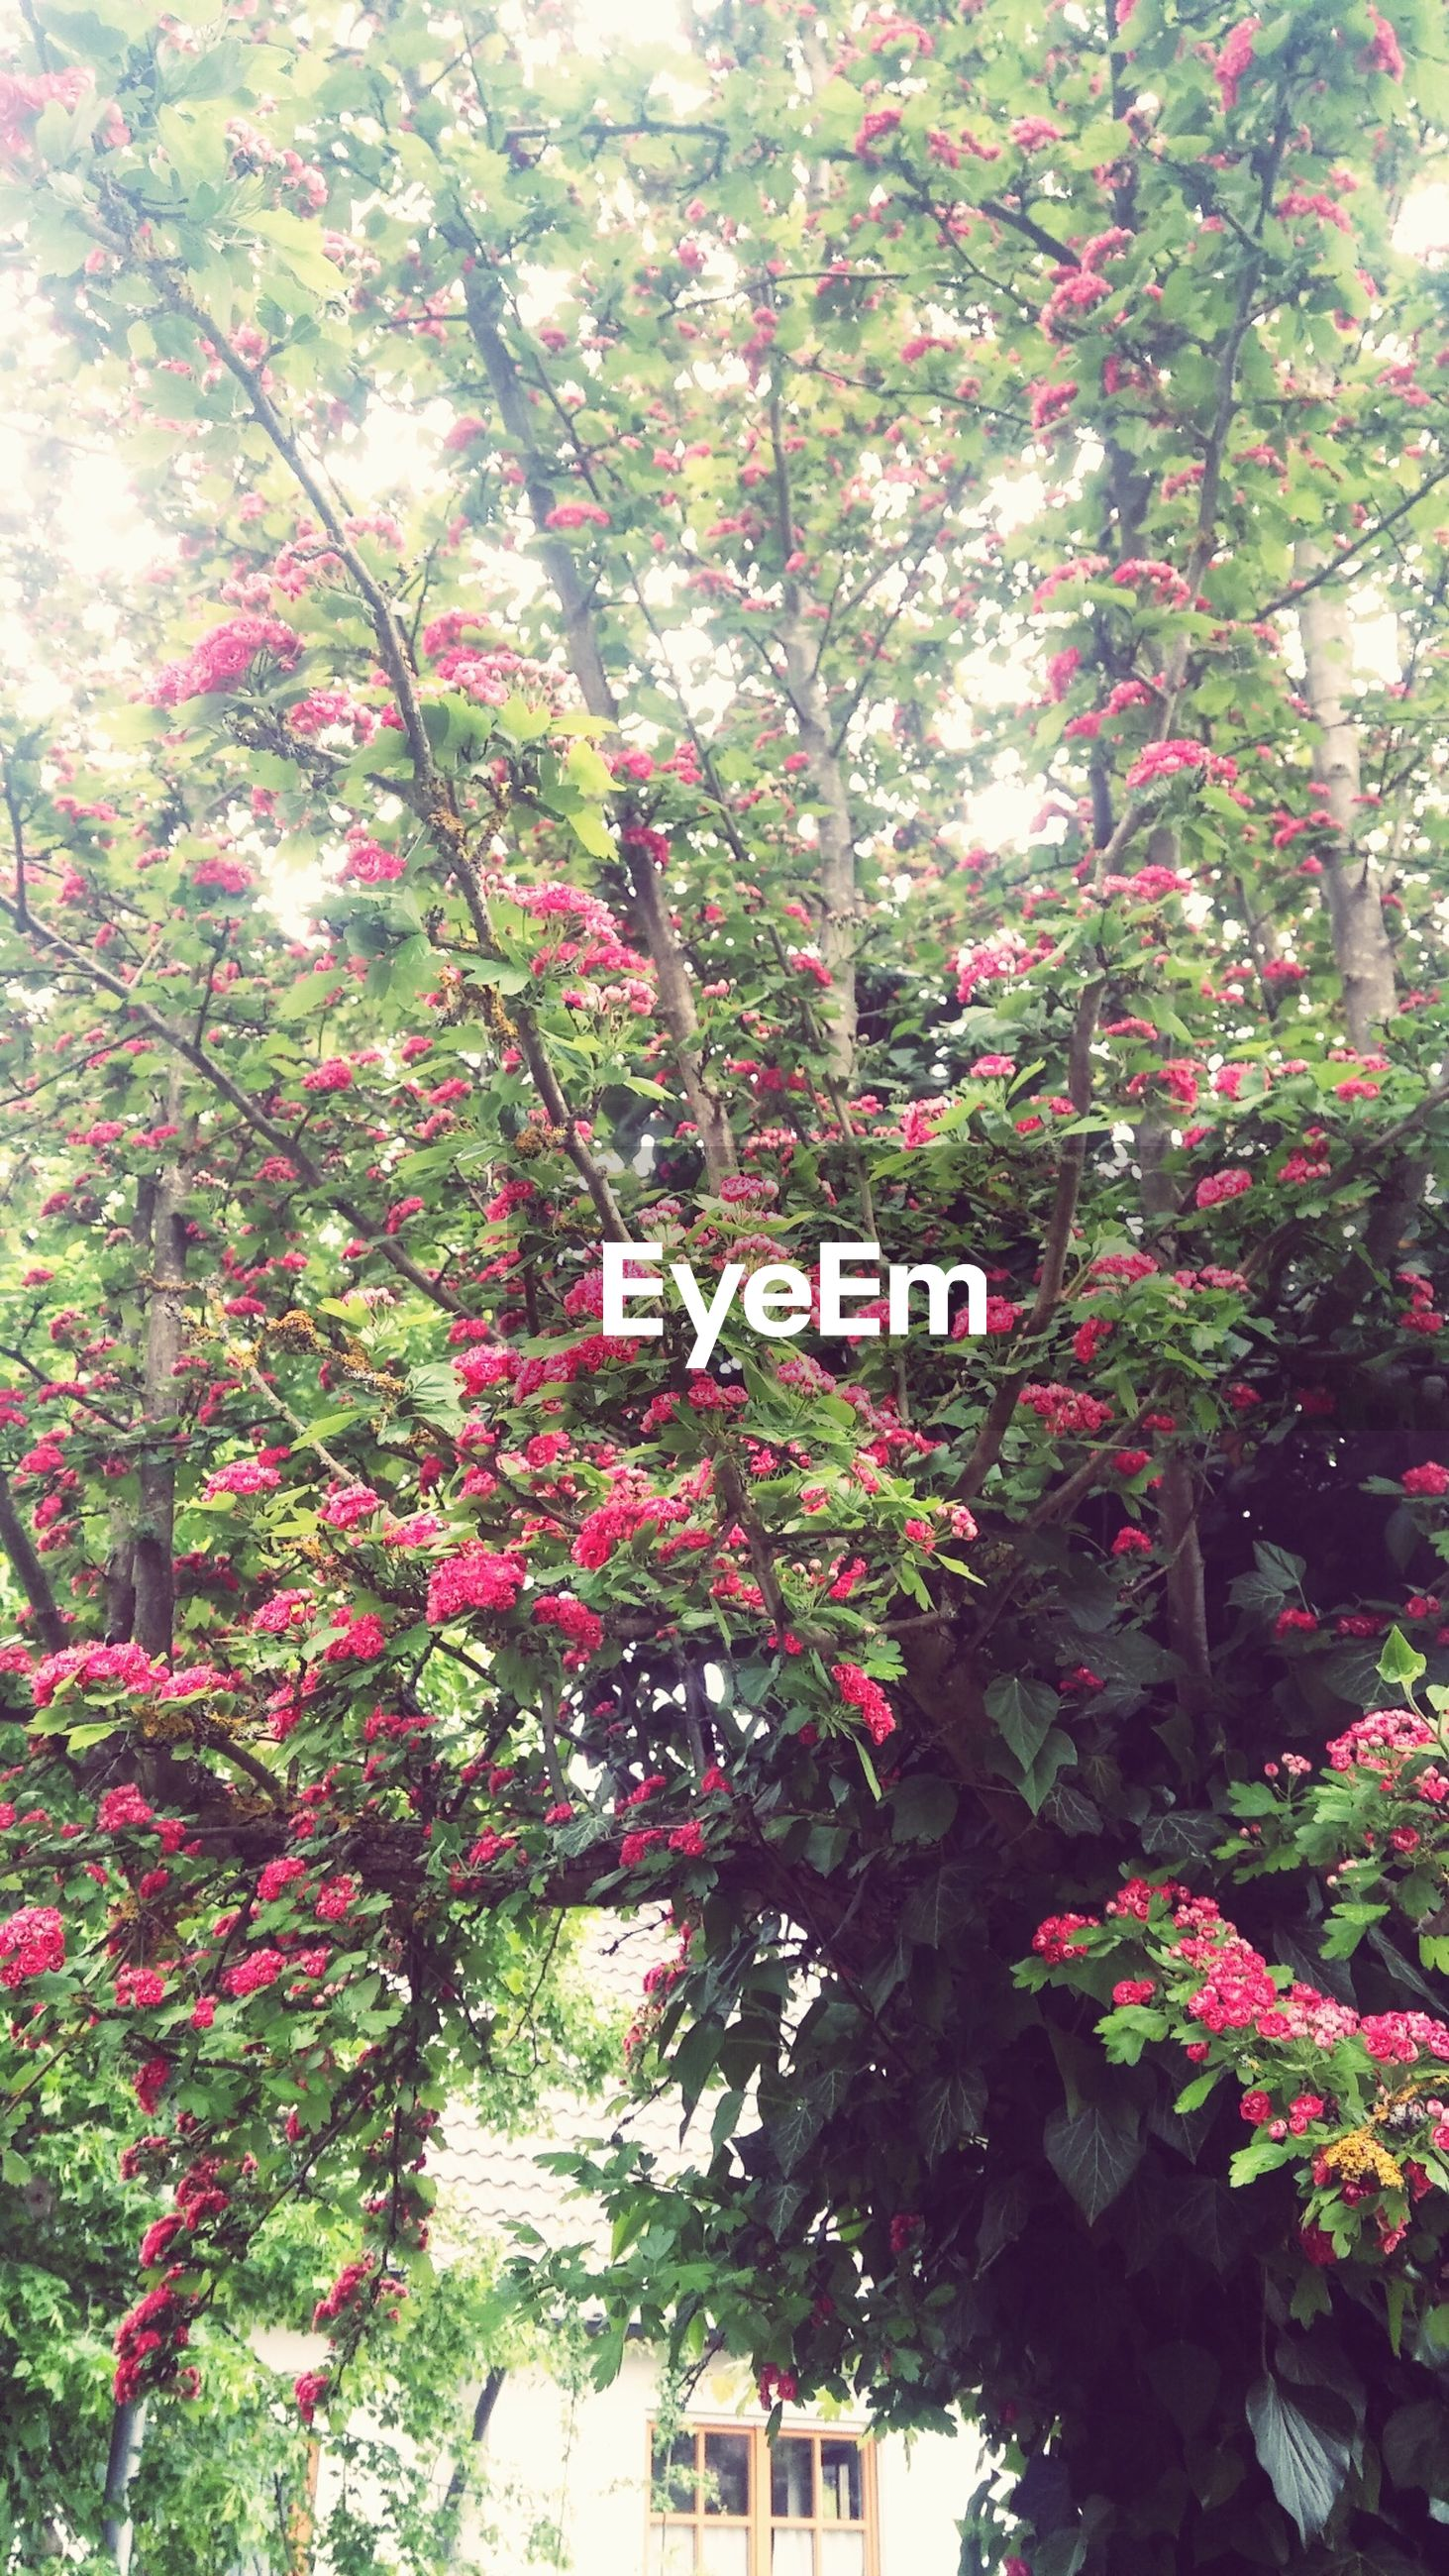 tree, growth, branch, flower, beauty in nature, nature, freshness, low angle view, pink color, blossom, day, leaf, outdoors, tranquility, no people, plant, growing, season, sunlight, in bloom